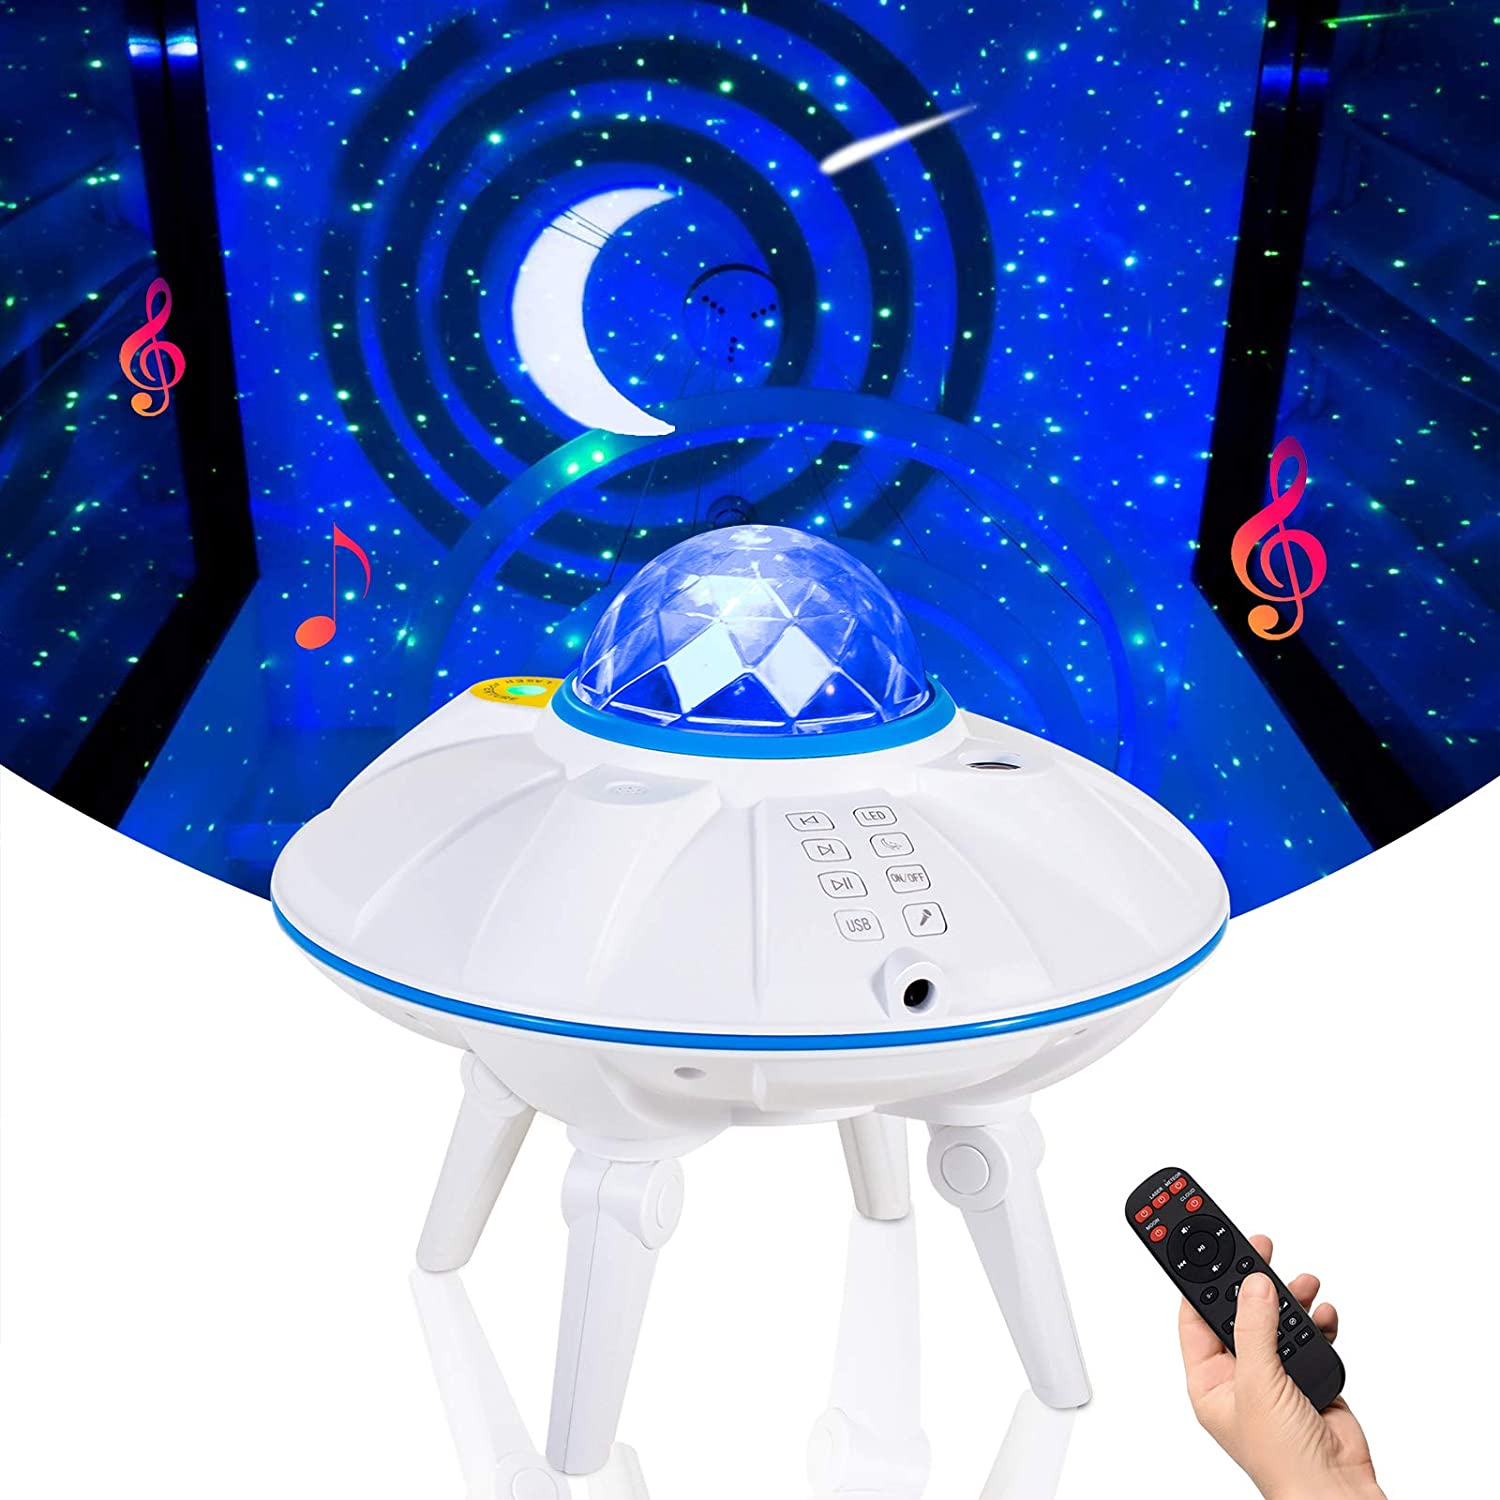 ZumYu Star Projector, Star Light Projector for Kids Adults Bedroom, Galaxy Projector with Remote Control, Decorating Home Theatre/Game Rooms/Bluetooth Music Speaker (Blue)